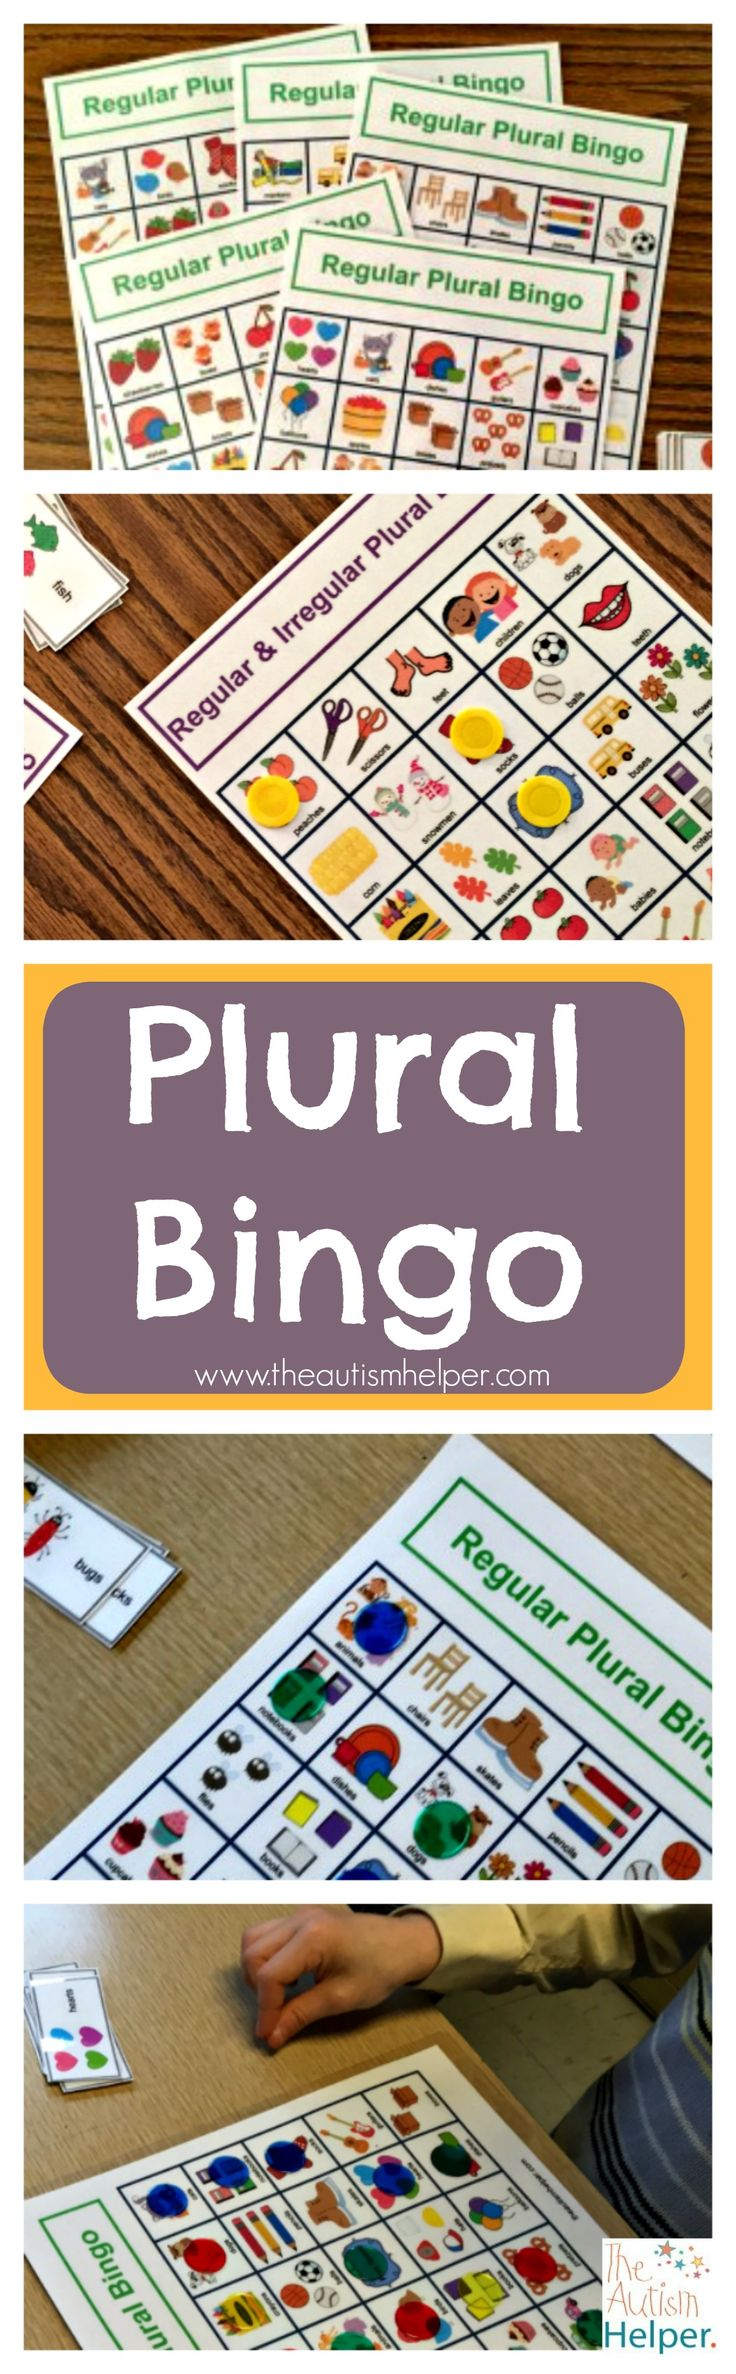 Here's a super fun way to work on regular & irregular plurals with some of your students. Plural Bingo comes with multiple regular, irregular & combo boards with different pictures to keep it challenging - Thanks Sarah the Speech Helper!  From theautismhelper.com